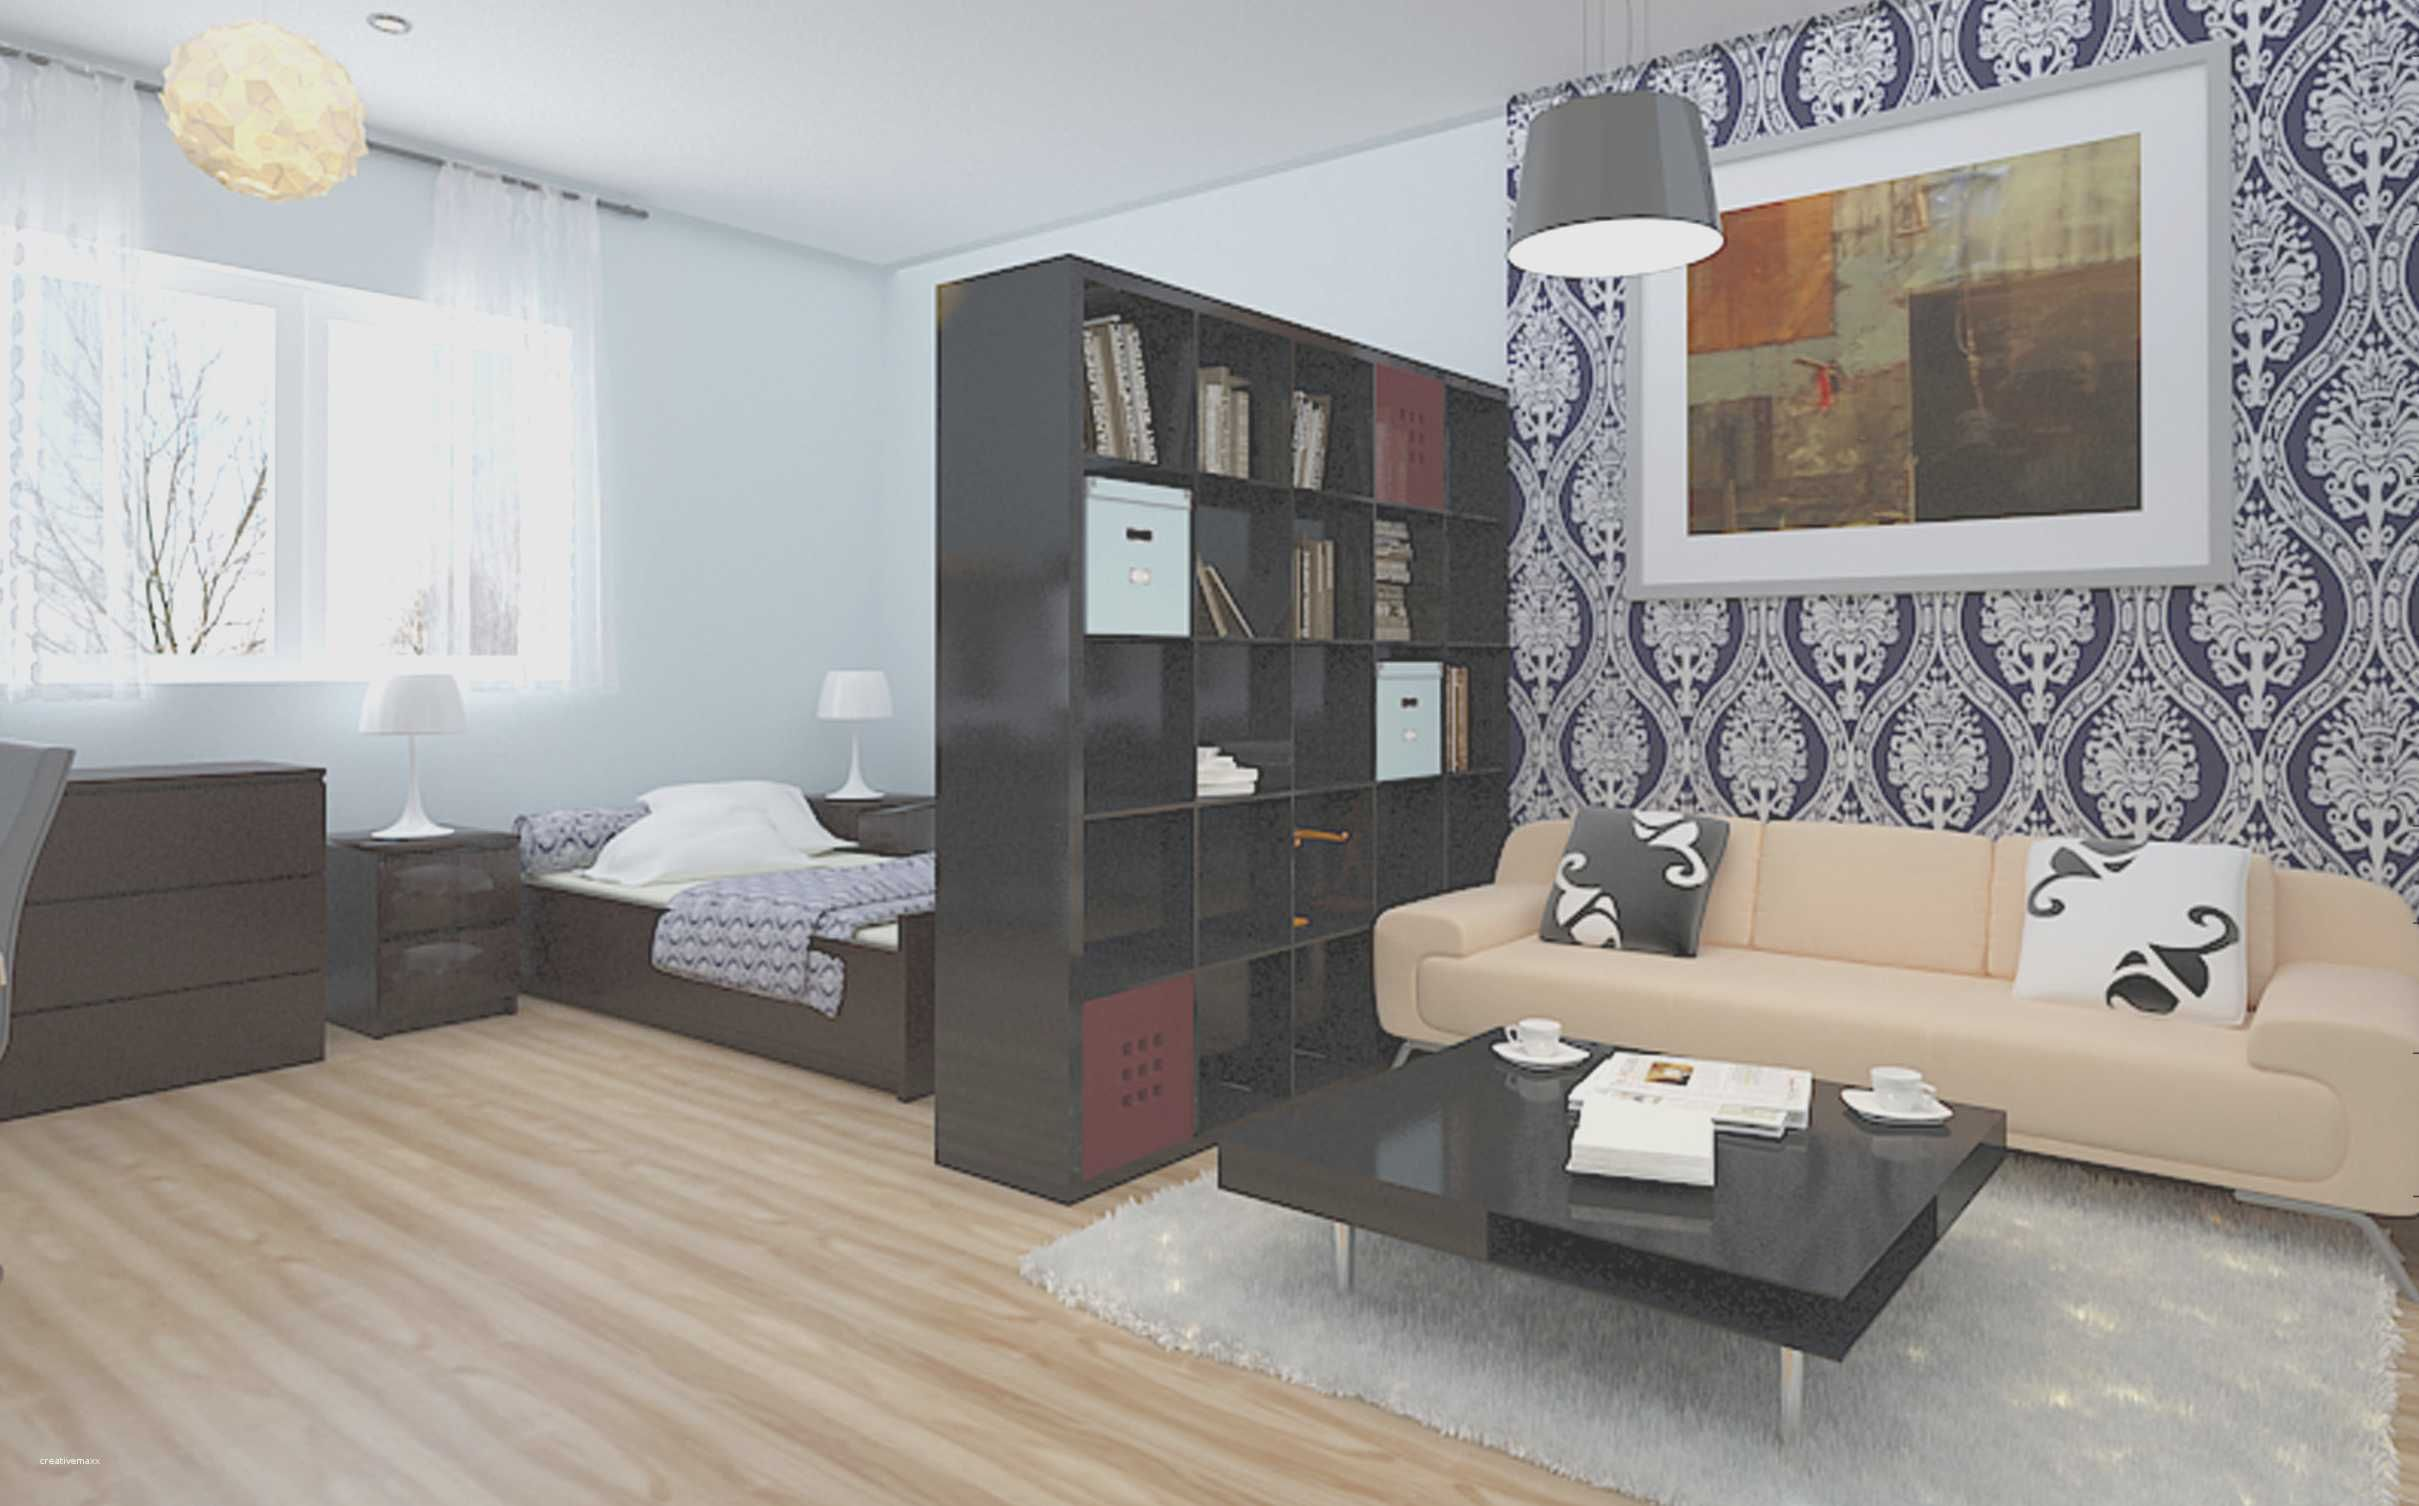 Unique Studio Apartment Design Layouts | Feels Like Home ...